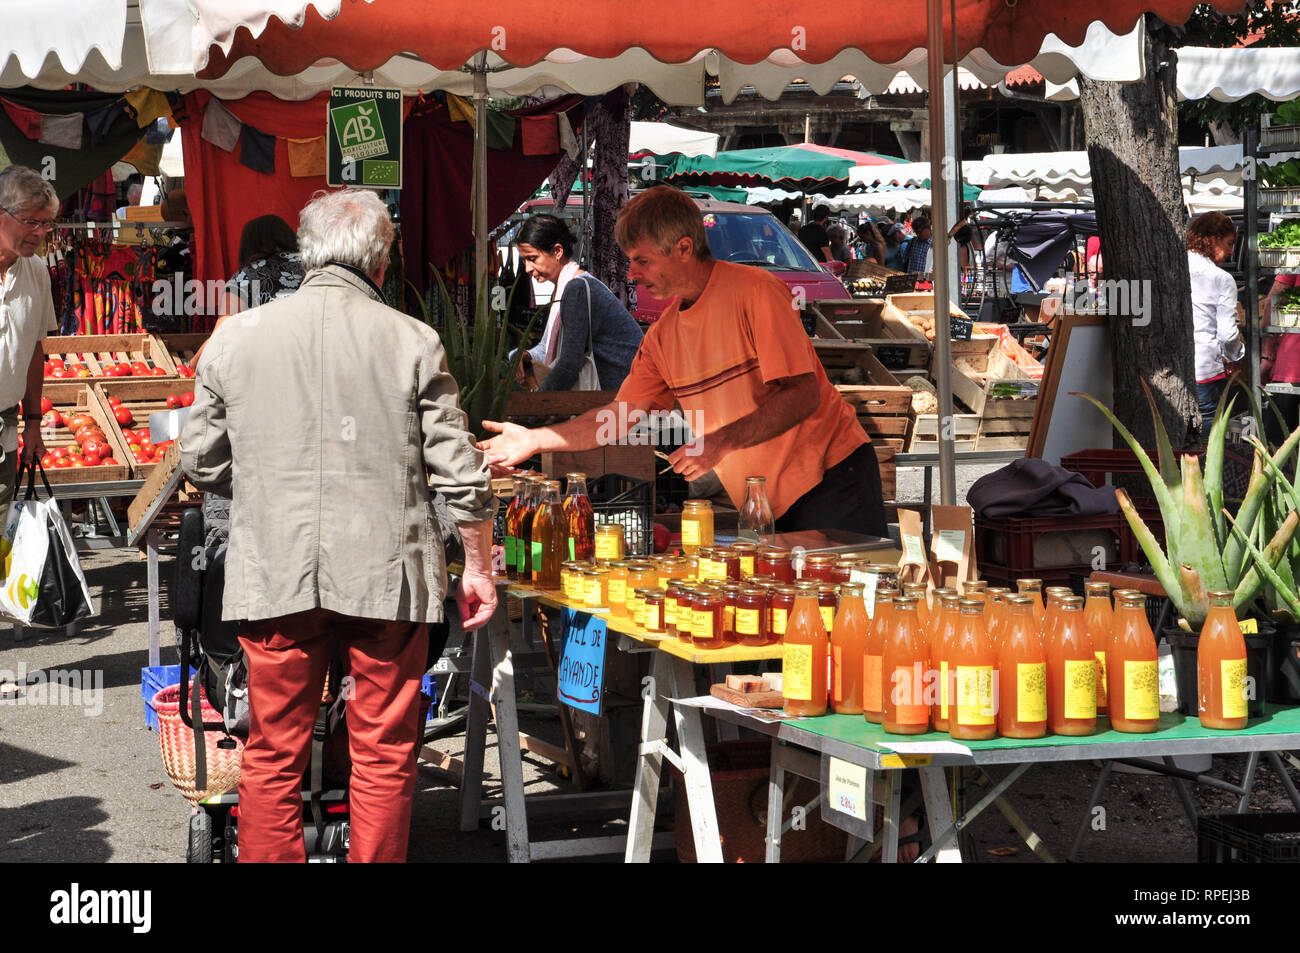 The busy market at Mirepoix, Ariege, Occitanie, France - Stock Image